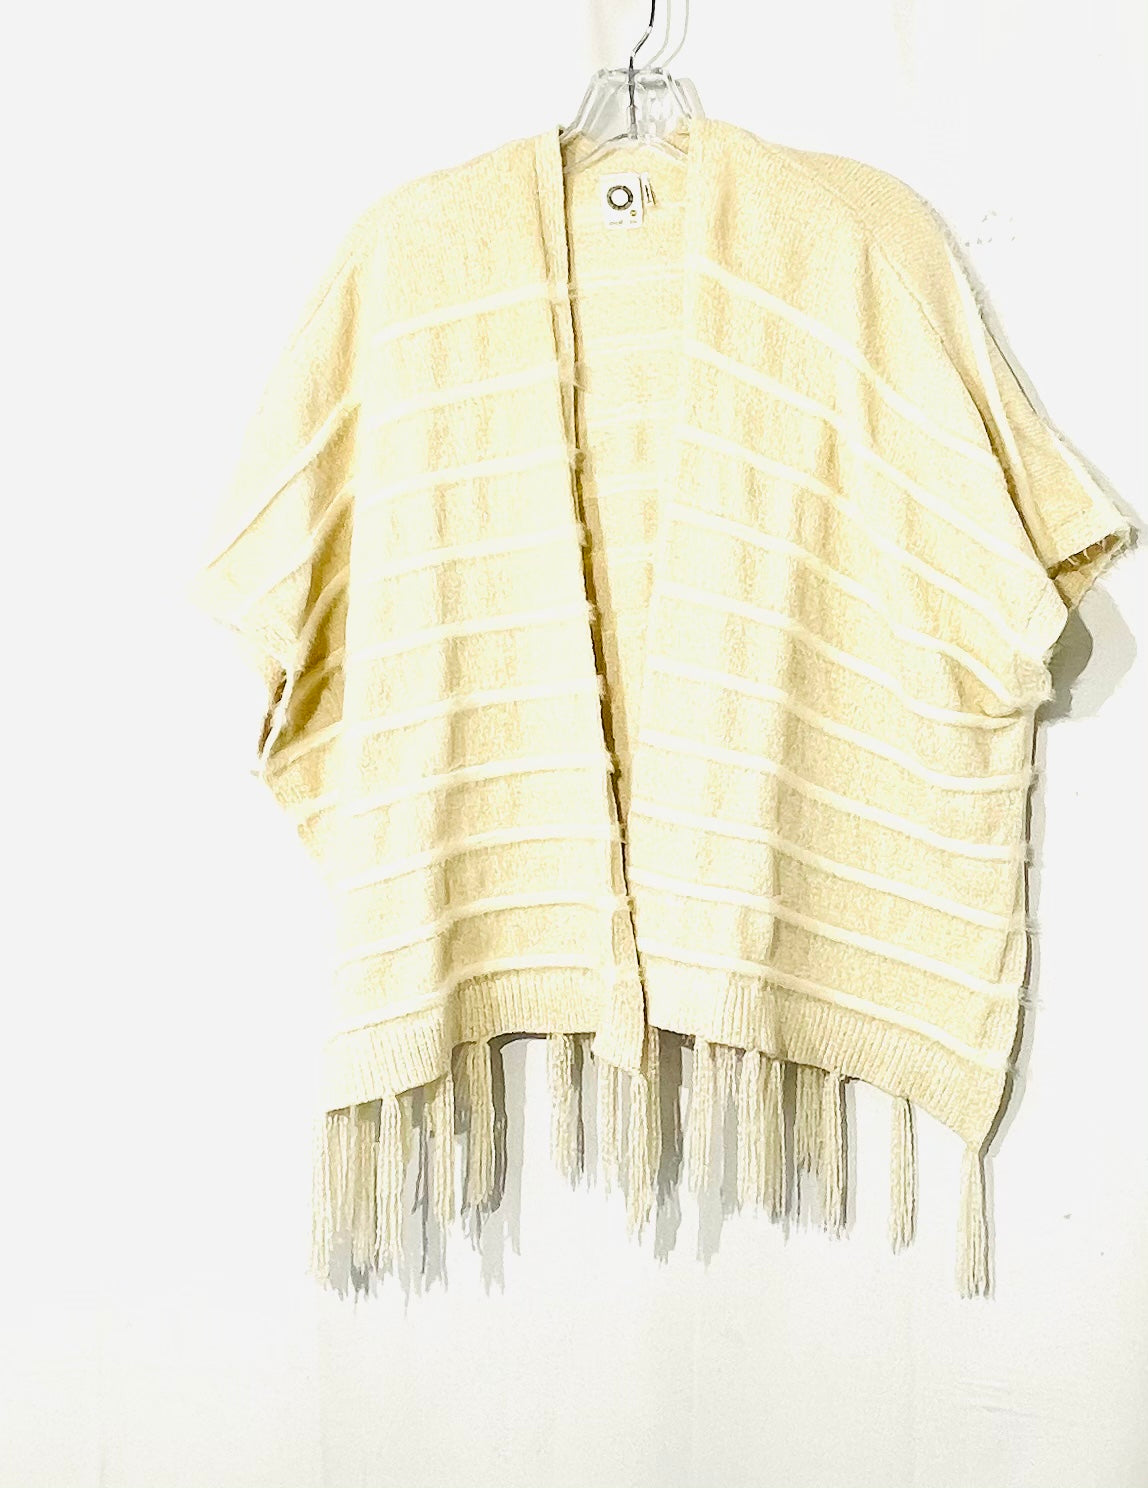 Primary Photo - BRAND:  AKEMI + KIN<BR>STYLE: SWEATER SHORT SLEEVE <BR>COLOR: CREAM <BR>SIZE: S/M<BR>OTHER INFO: AKEMI + KIN <BR>SKU: 262-26241-44512<BR>BLACK SPOT ON INSIDE